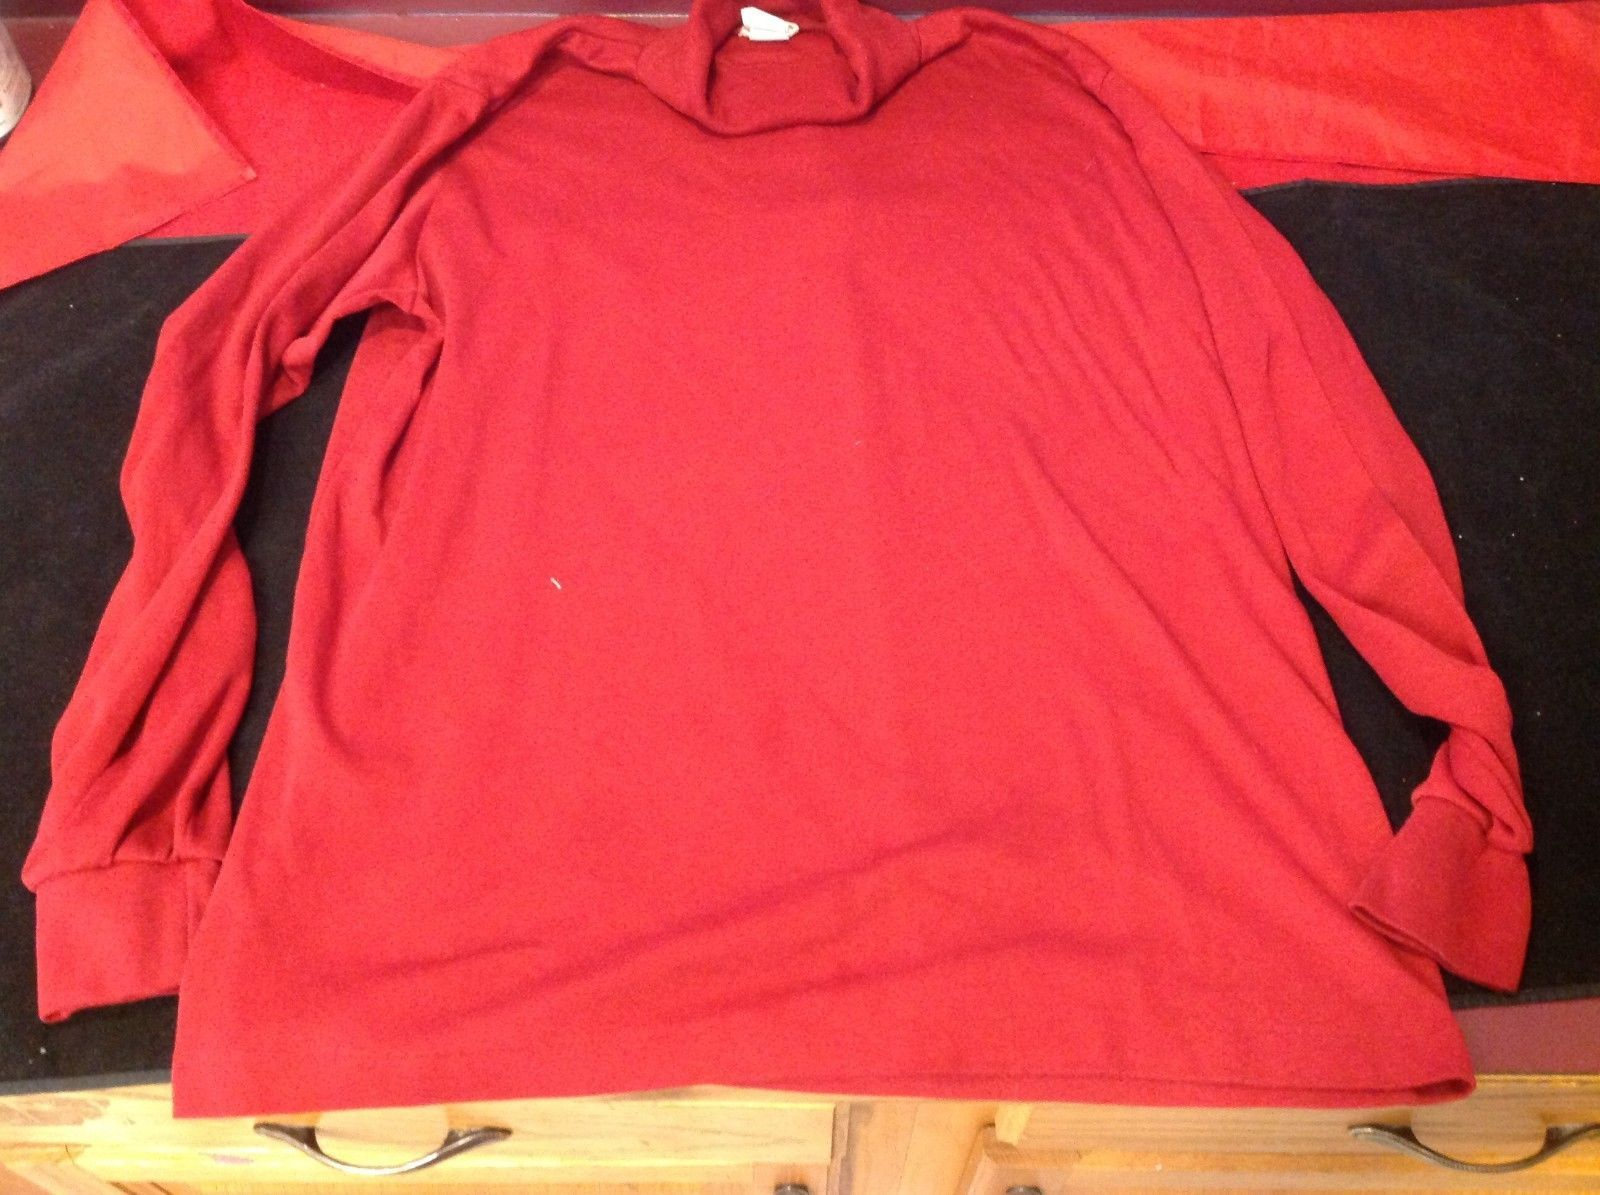 LL BEAN red tutleneck sweater for woman size xl